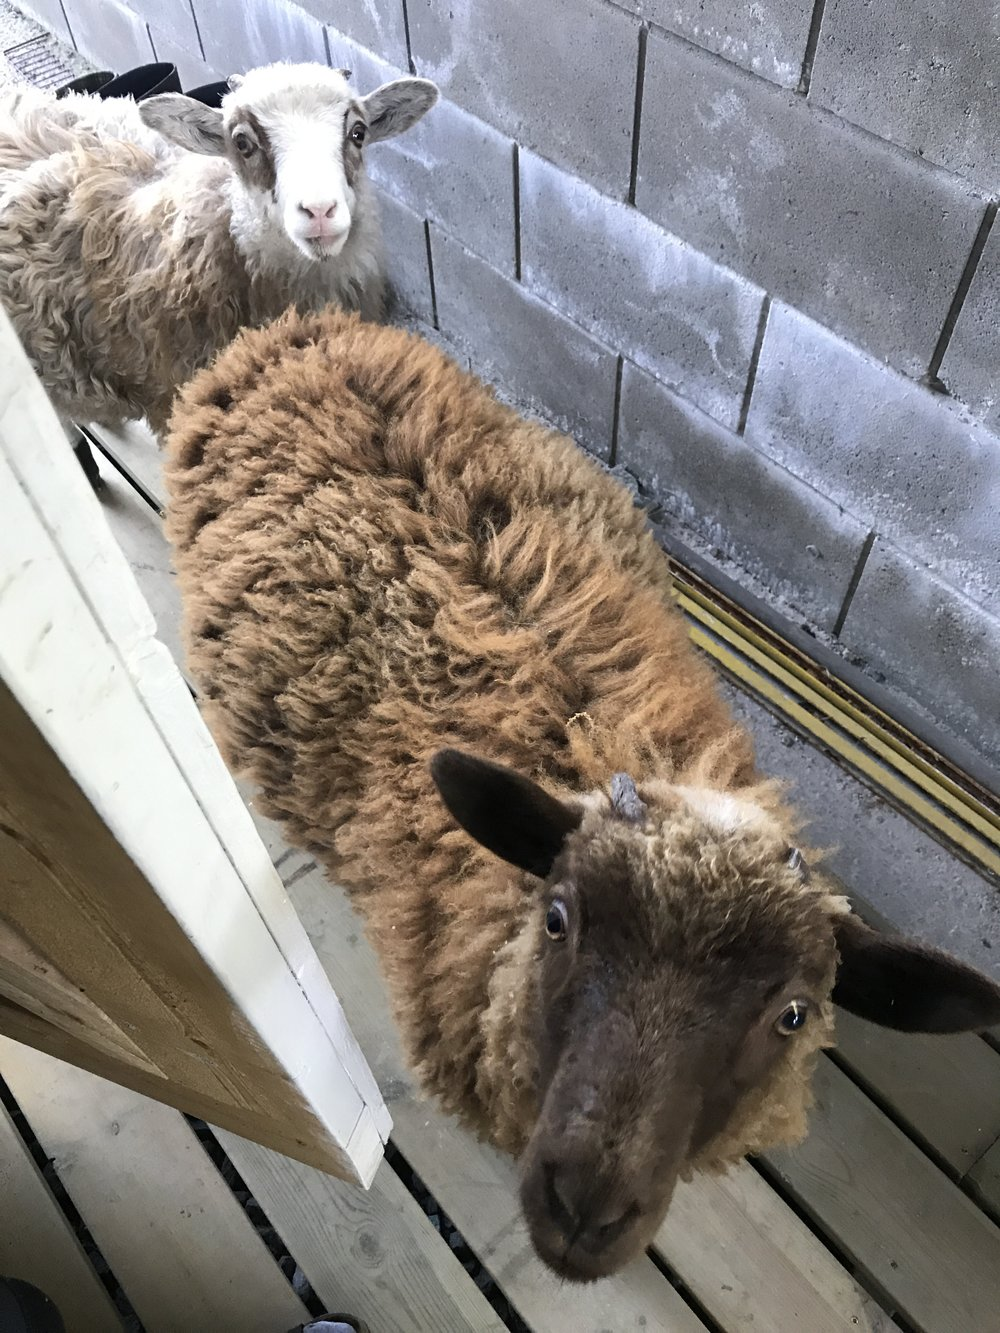 Since I'm currently working on my husbandry placement report, I don't have any relevant pictures to share. So here's a picture of the farm's two bottle-fed lambs that I thought perhaps you'd enjoy.